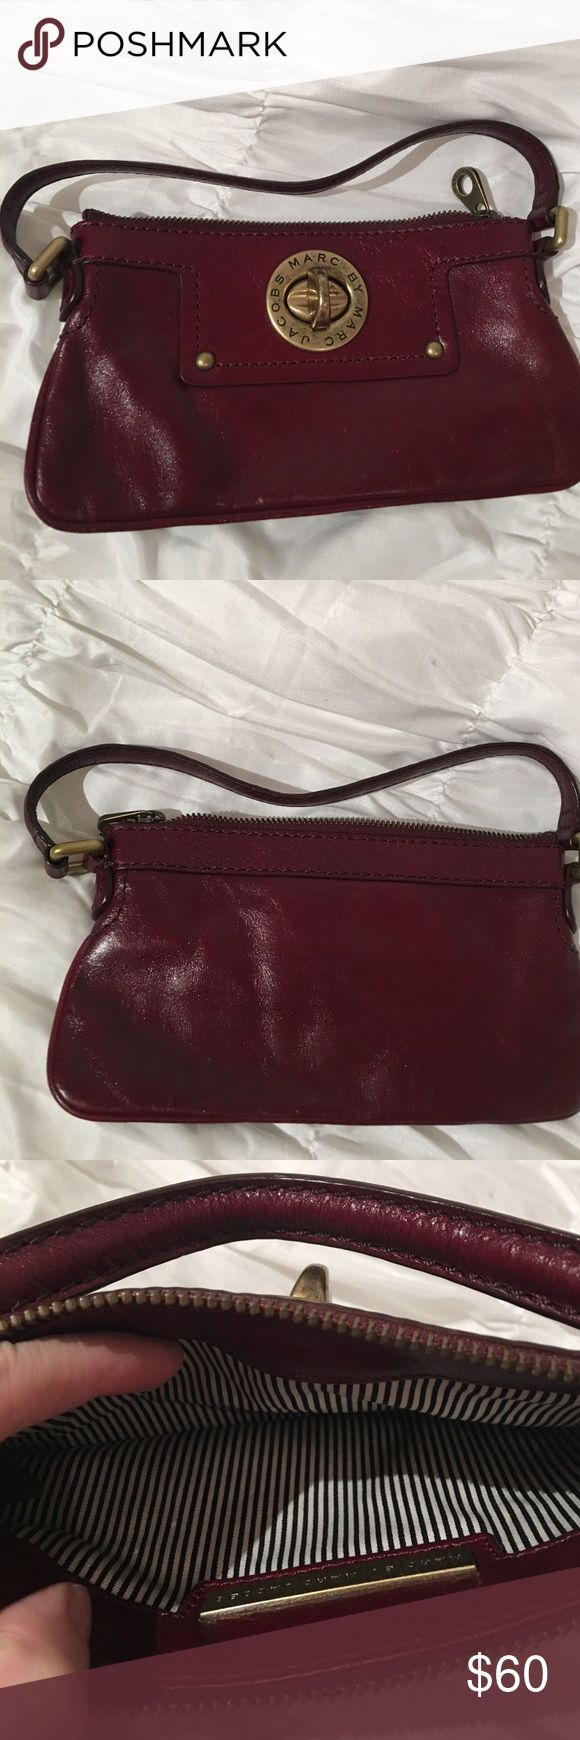 Marc by Marc Jacobs Handbag Maroon colored, Marc by Marc Jacobs handbag. Never worn. Marc by Marc Jacobs Bags Mini Bags